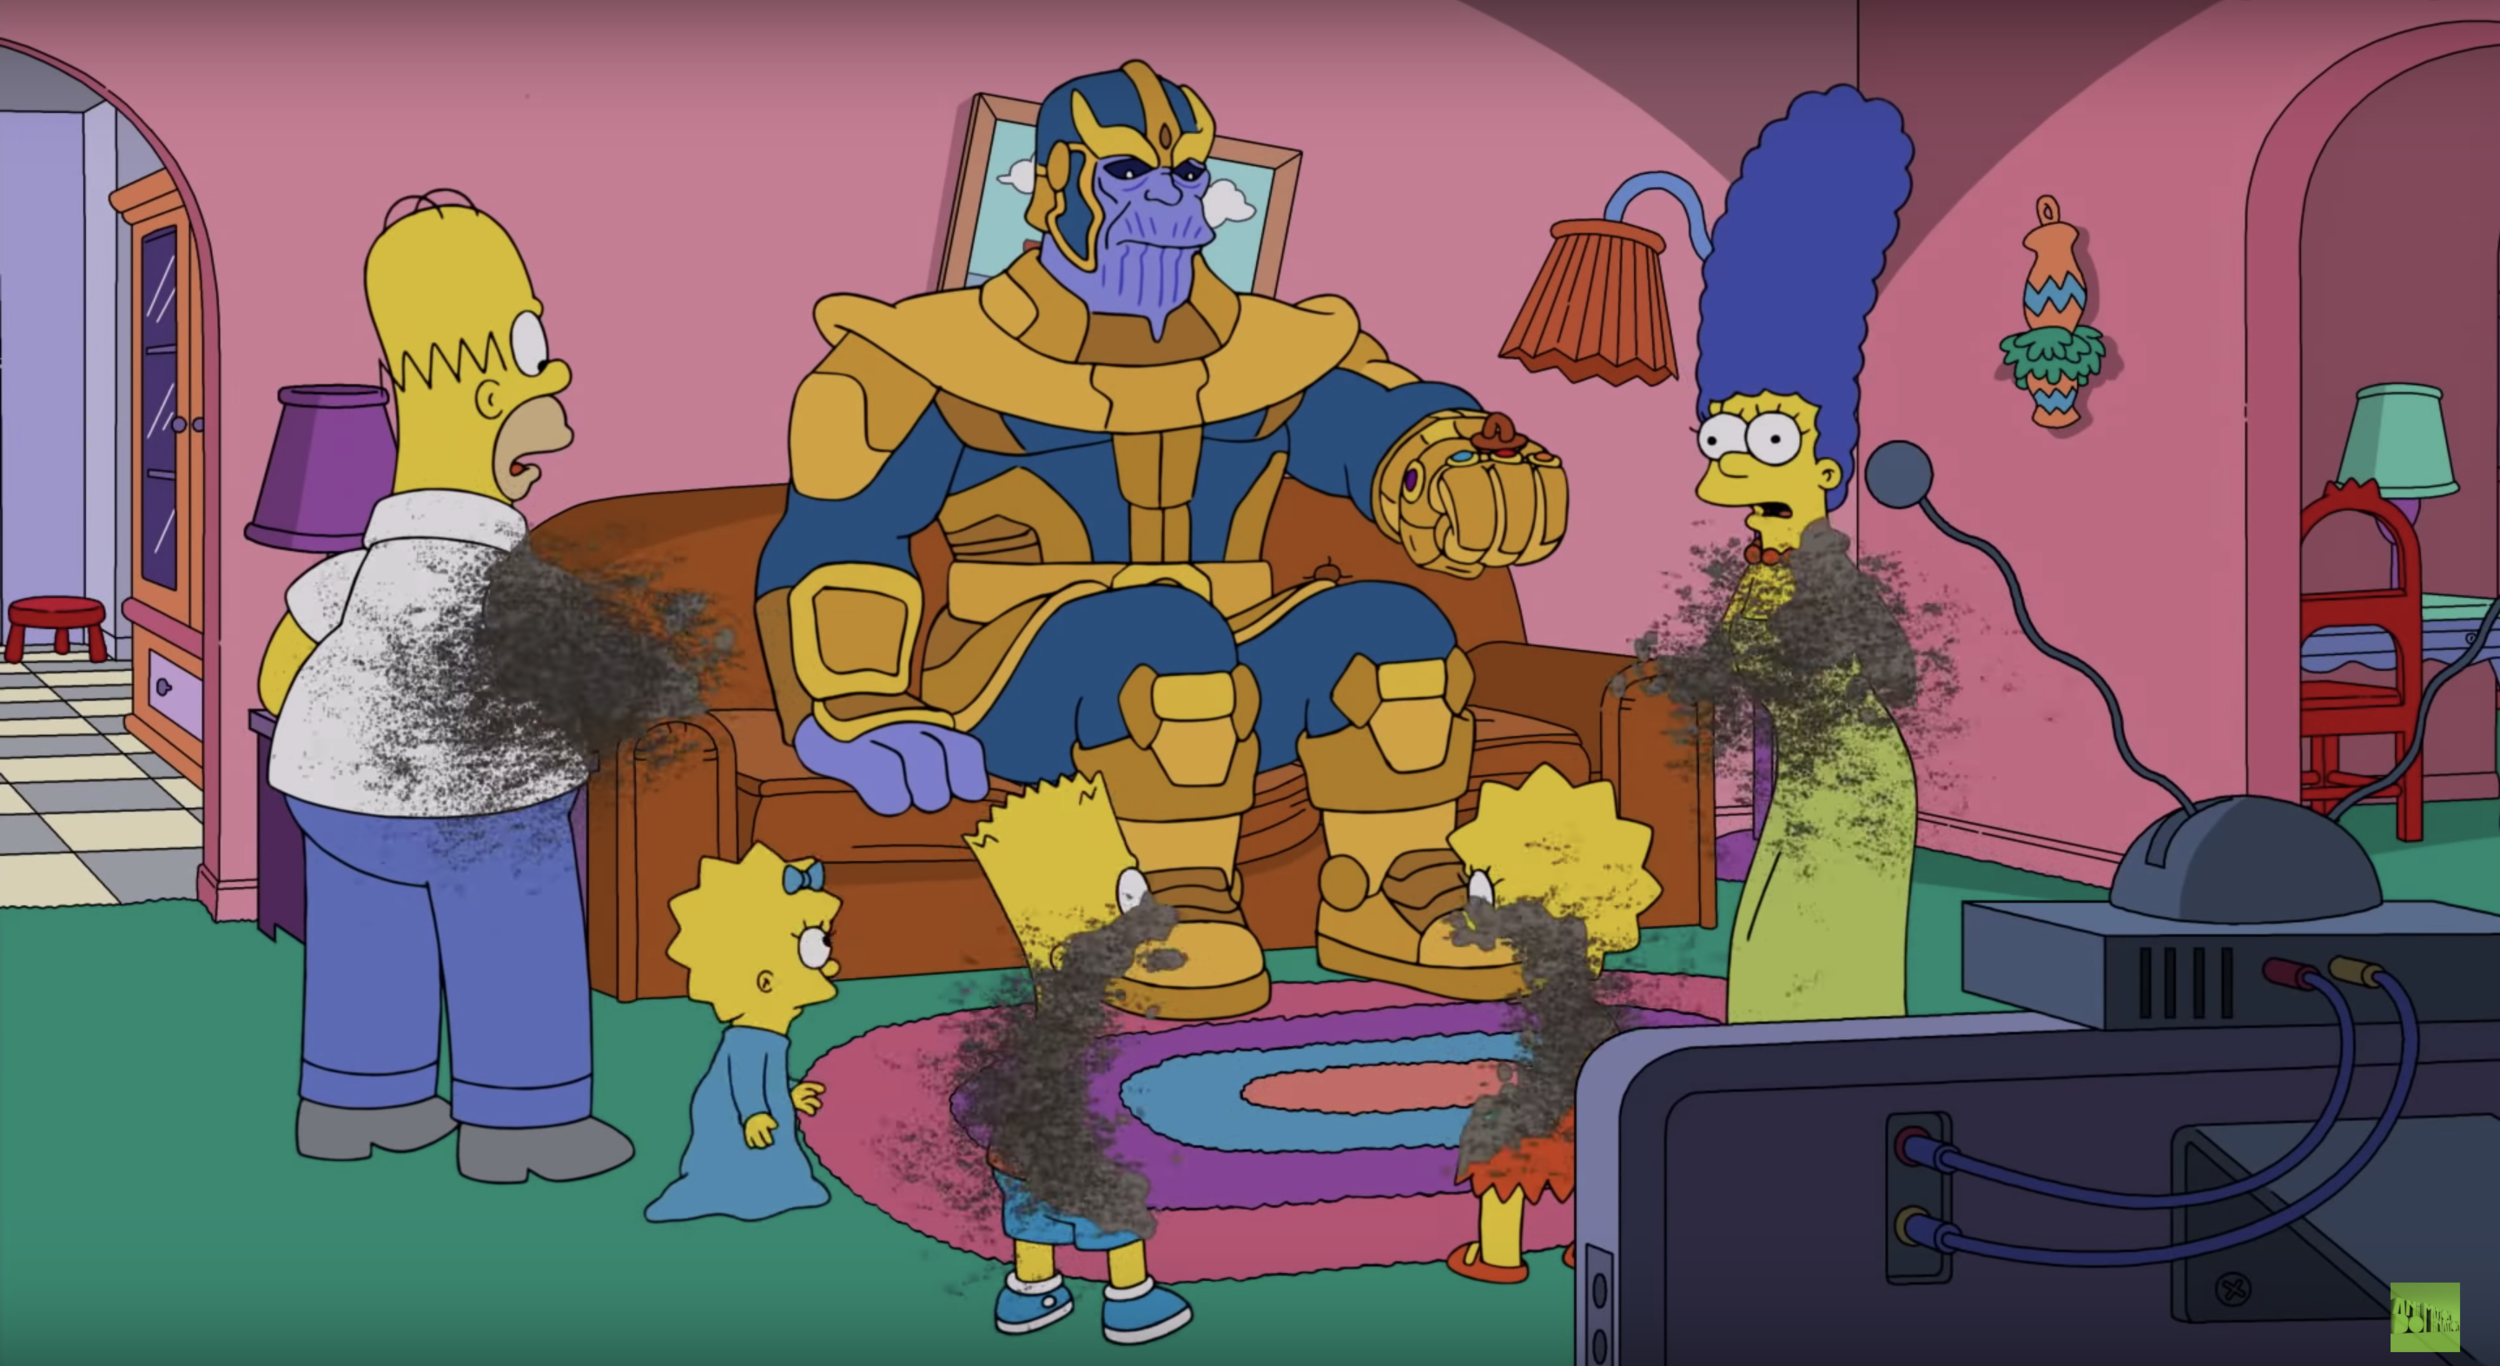 thanos-visits-the-simpsons-in-fun-new-couch-gag1